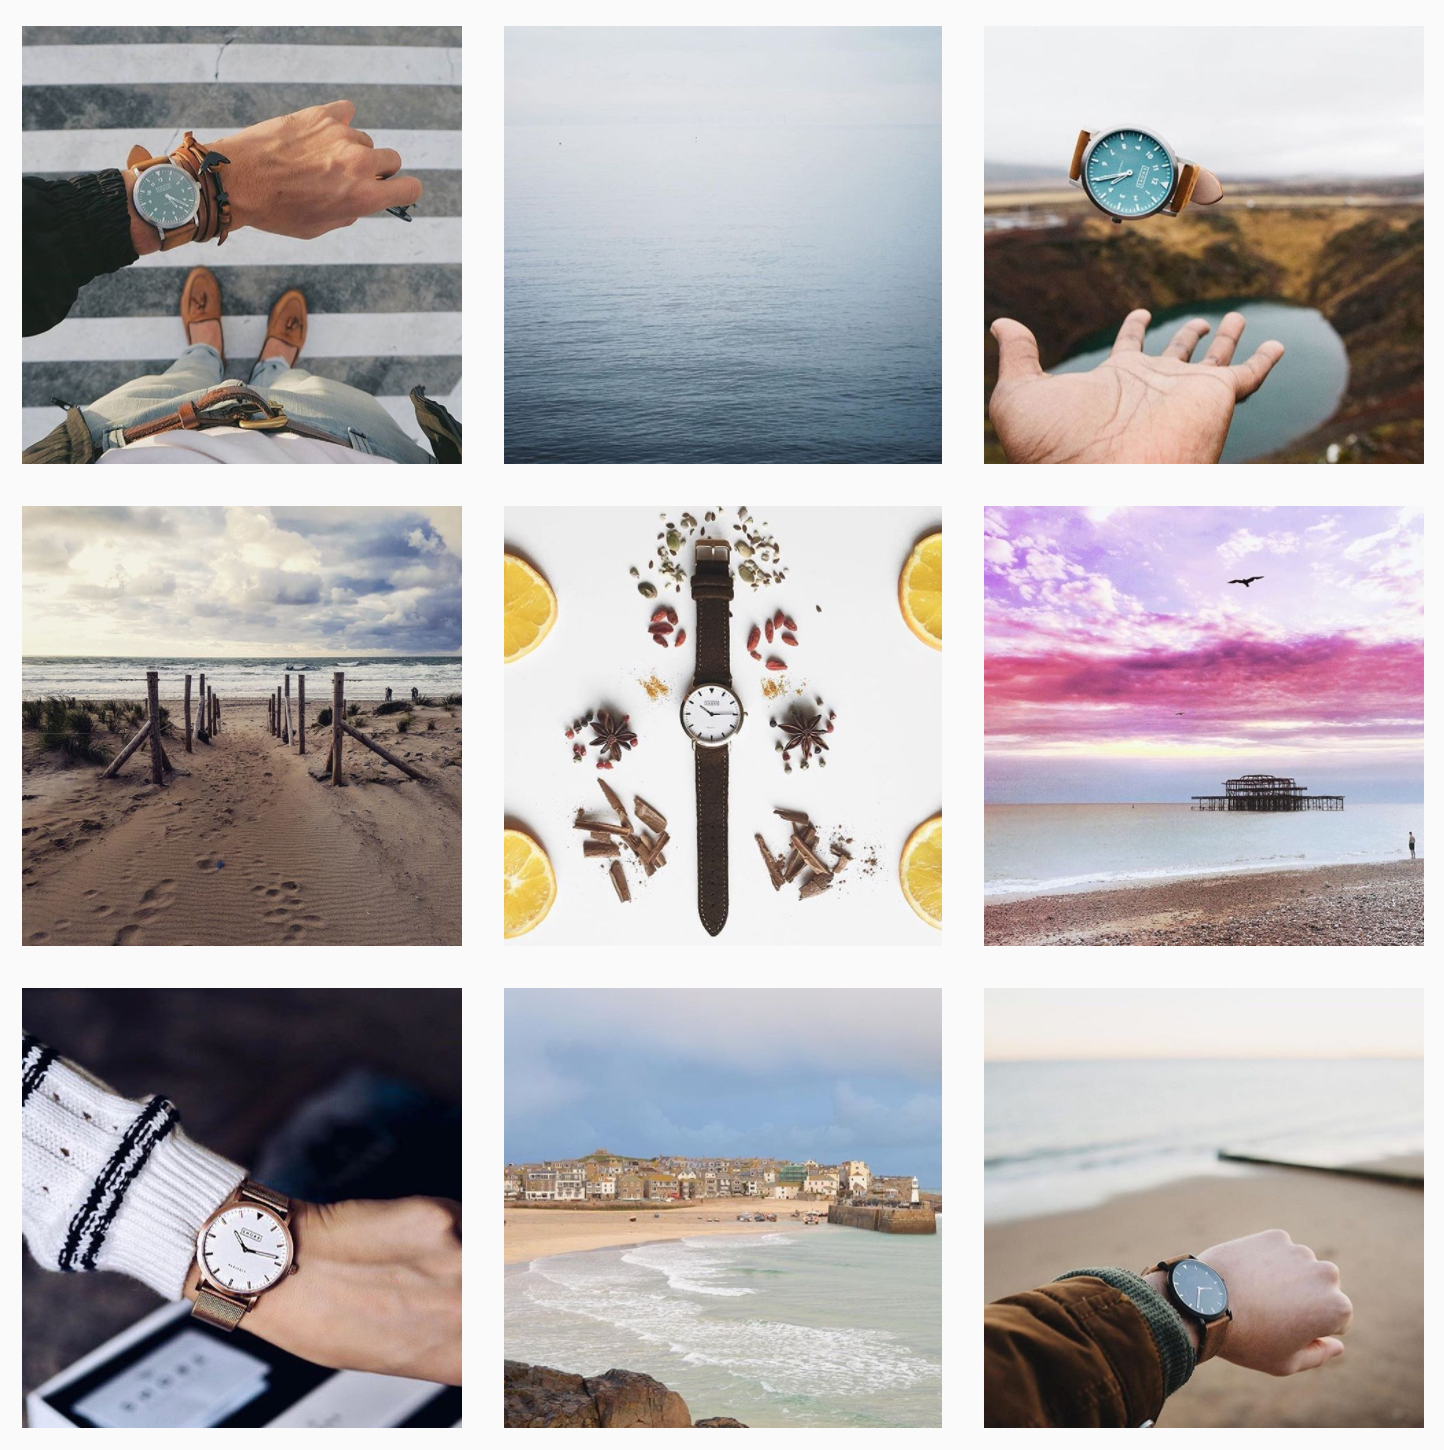 Cohesive theme Instagram. Instagram marketing